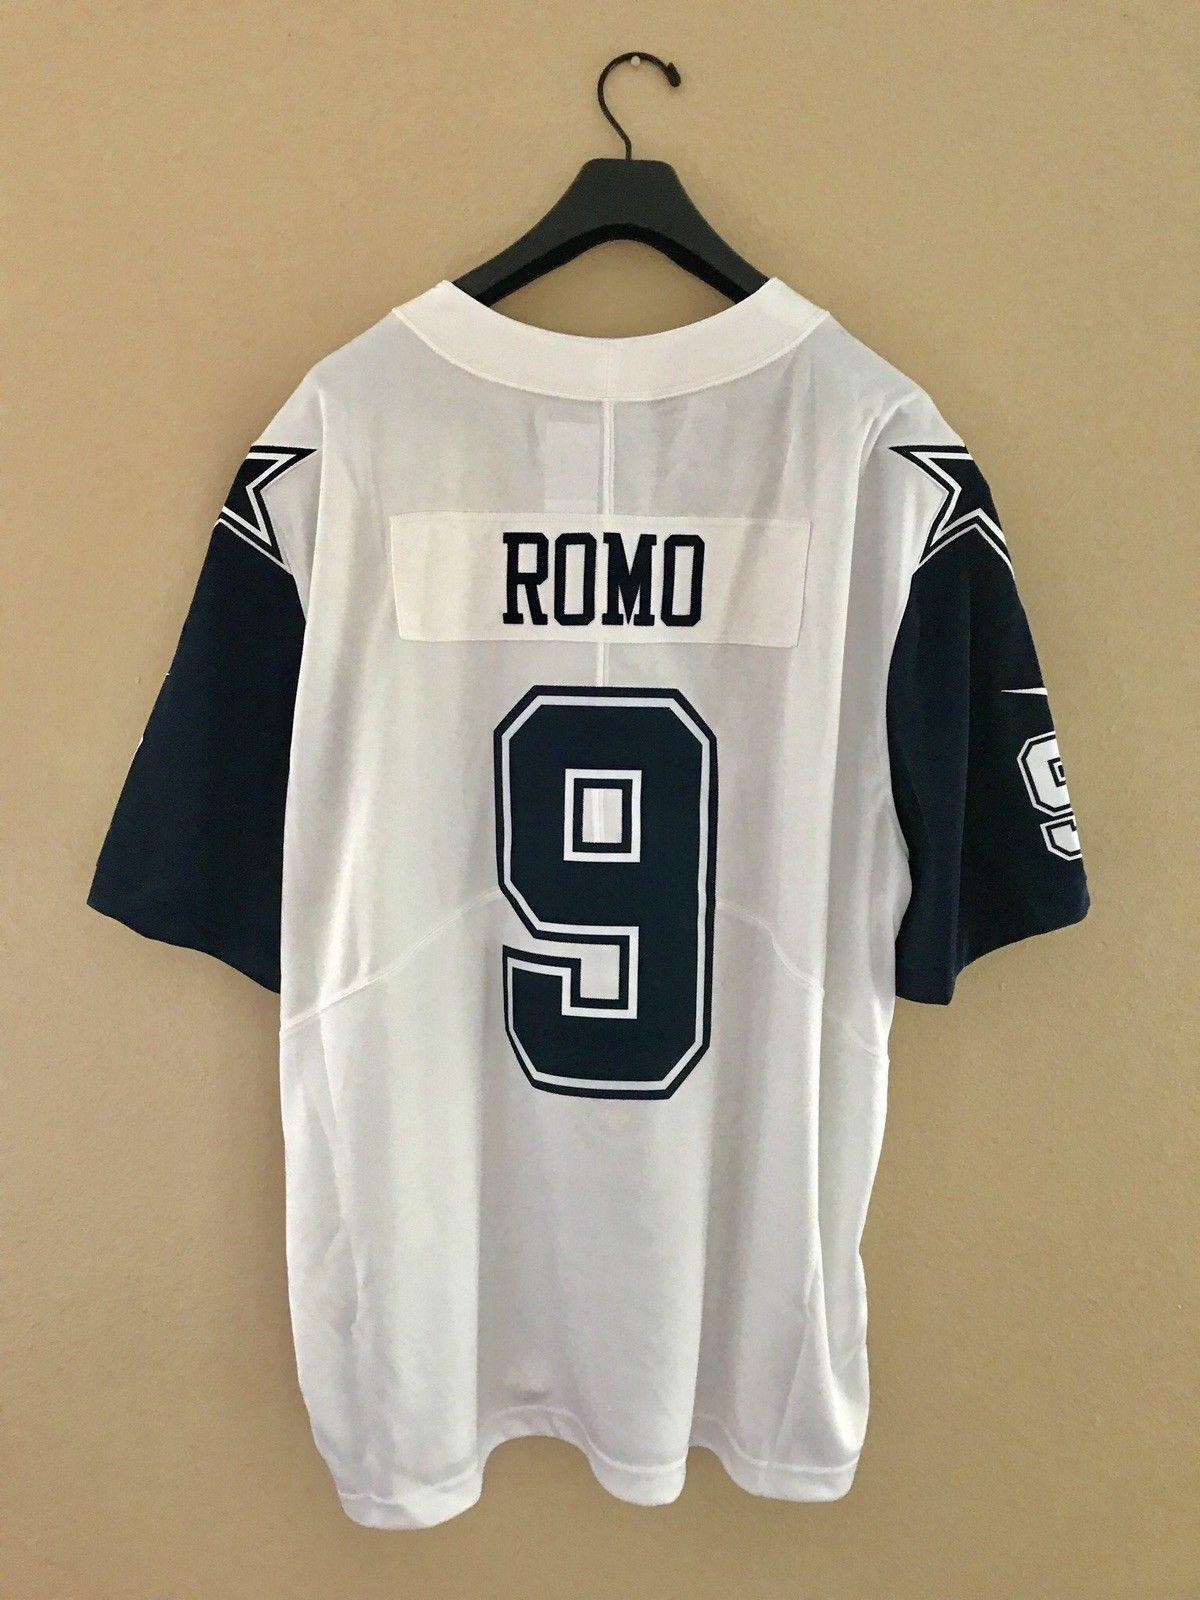 check out 9ef44 643ee New Dallas Cowboys Tony Romo Nike White Color Rush Legend ...